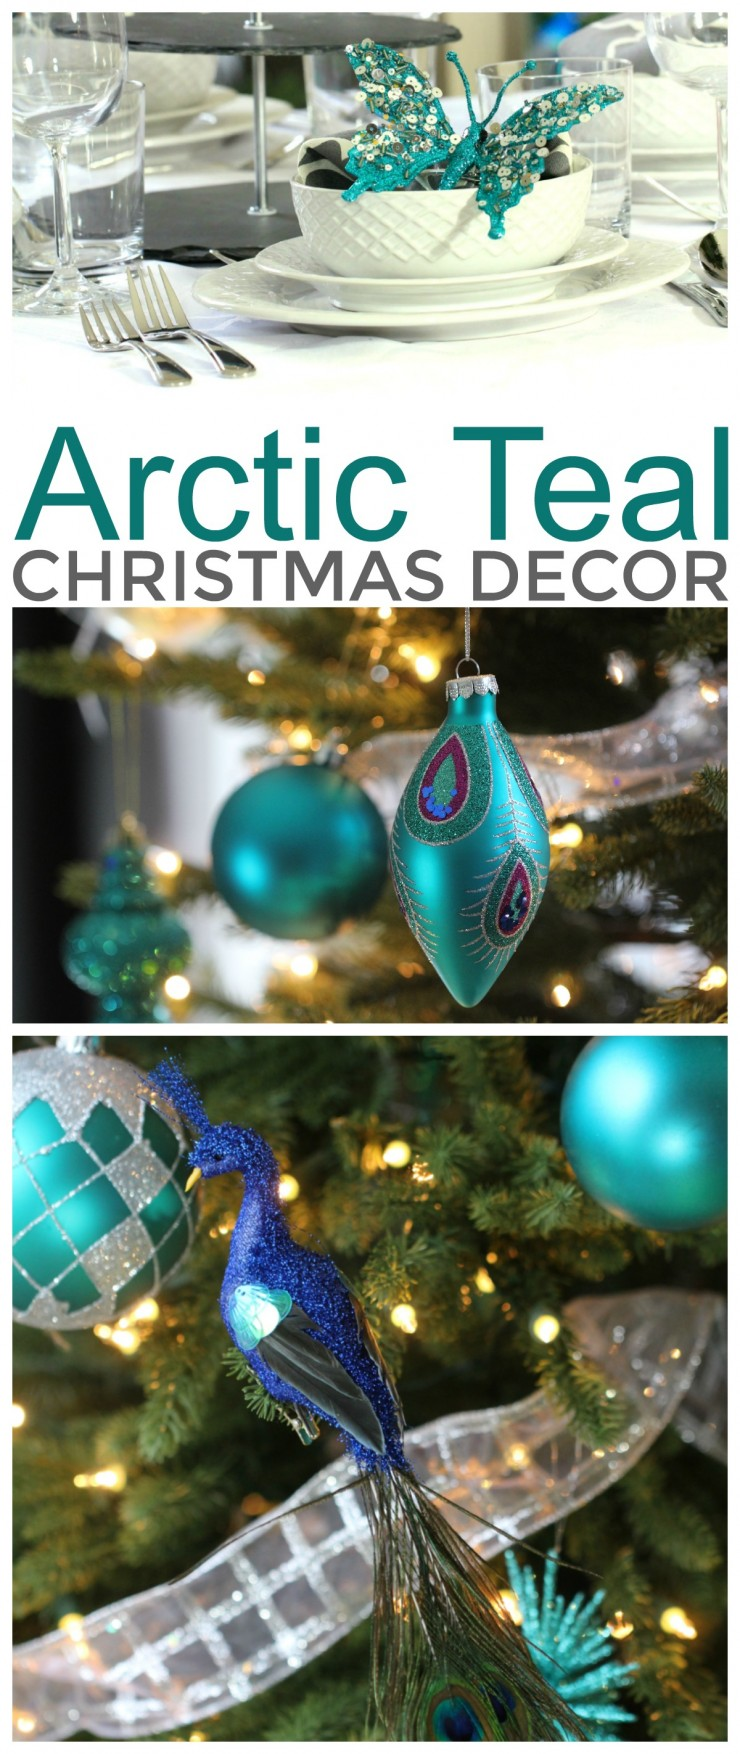 Arctic Teal Christmas Decoration Ideas - Teal Christmas Tree, Teal Christmas Tableschape and other easy Christmas Decor Ideas!